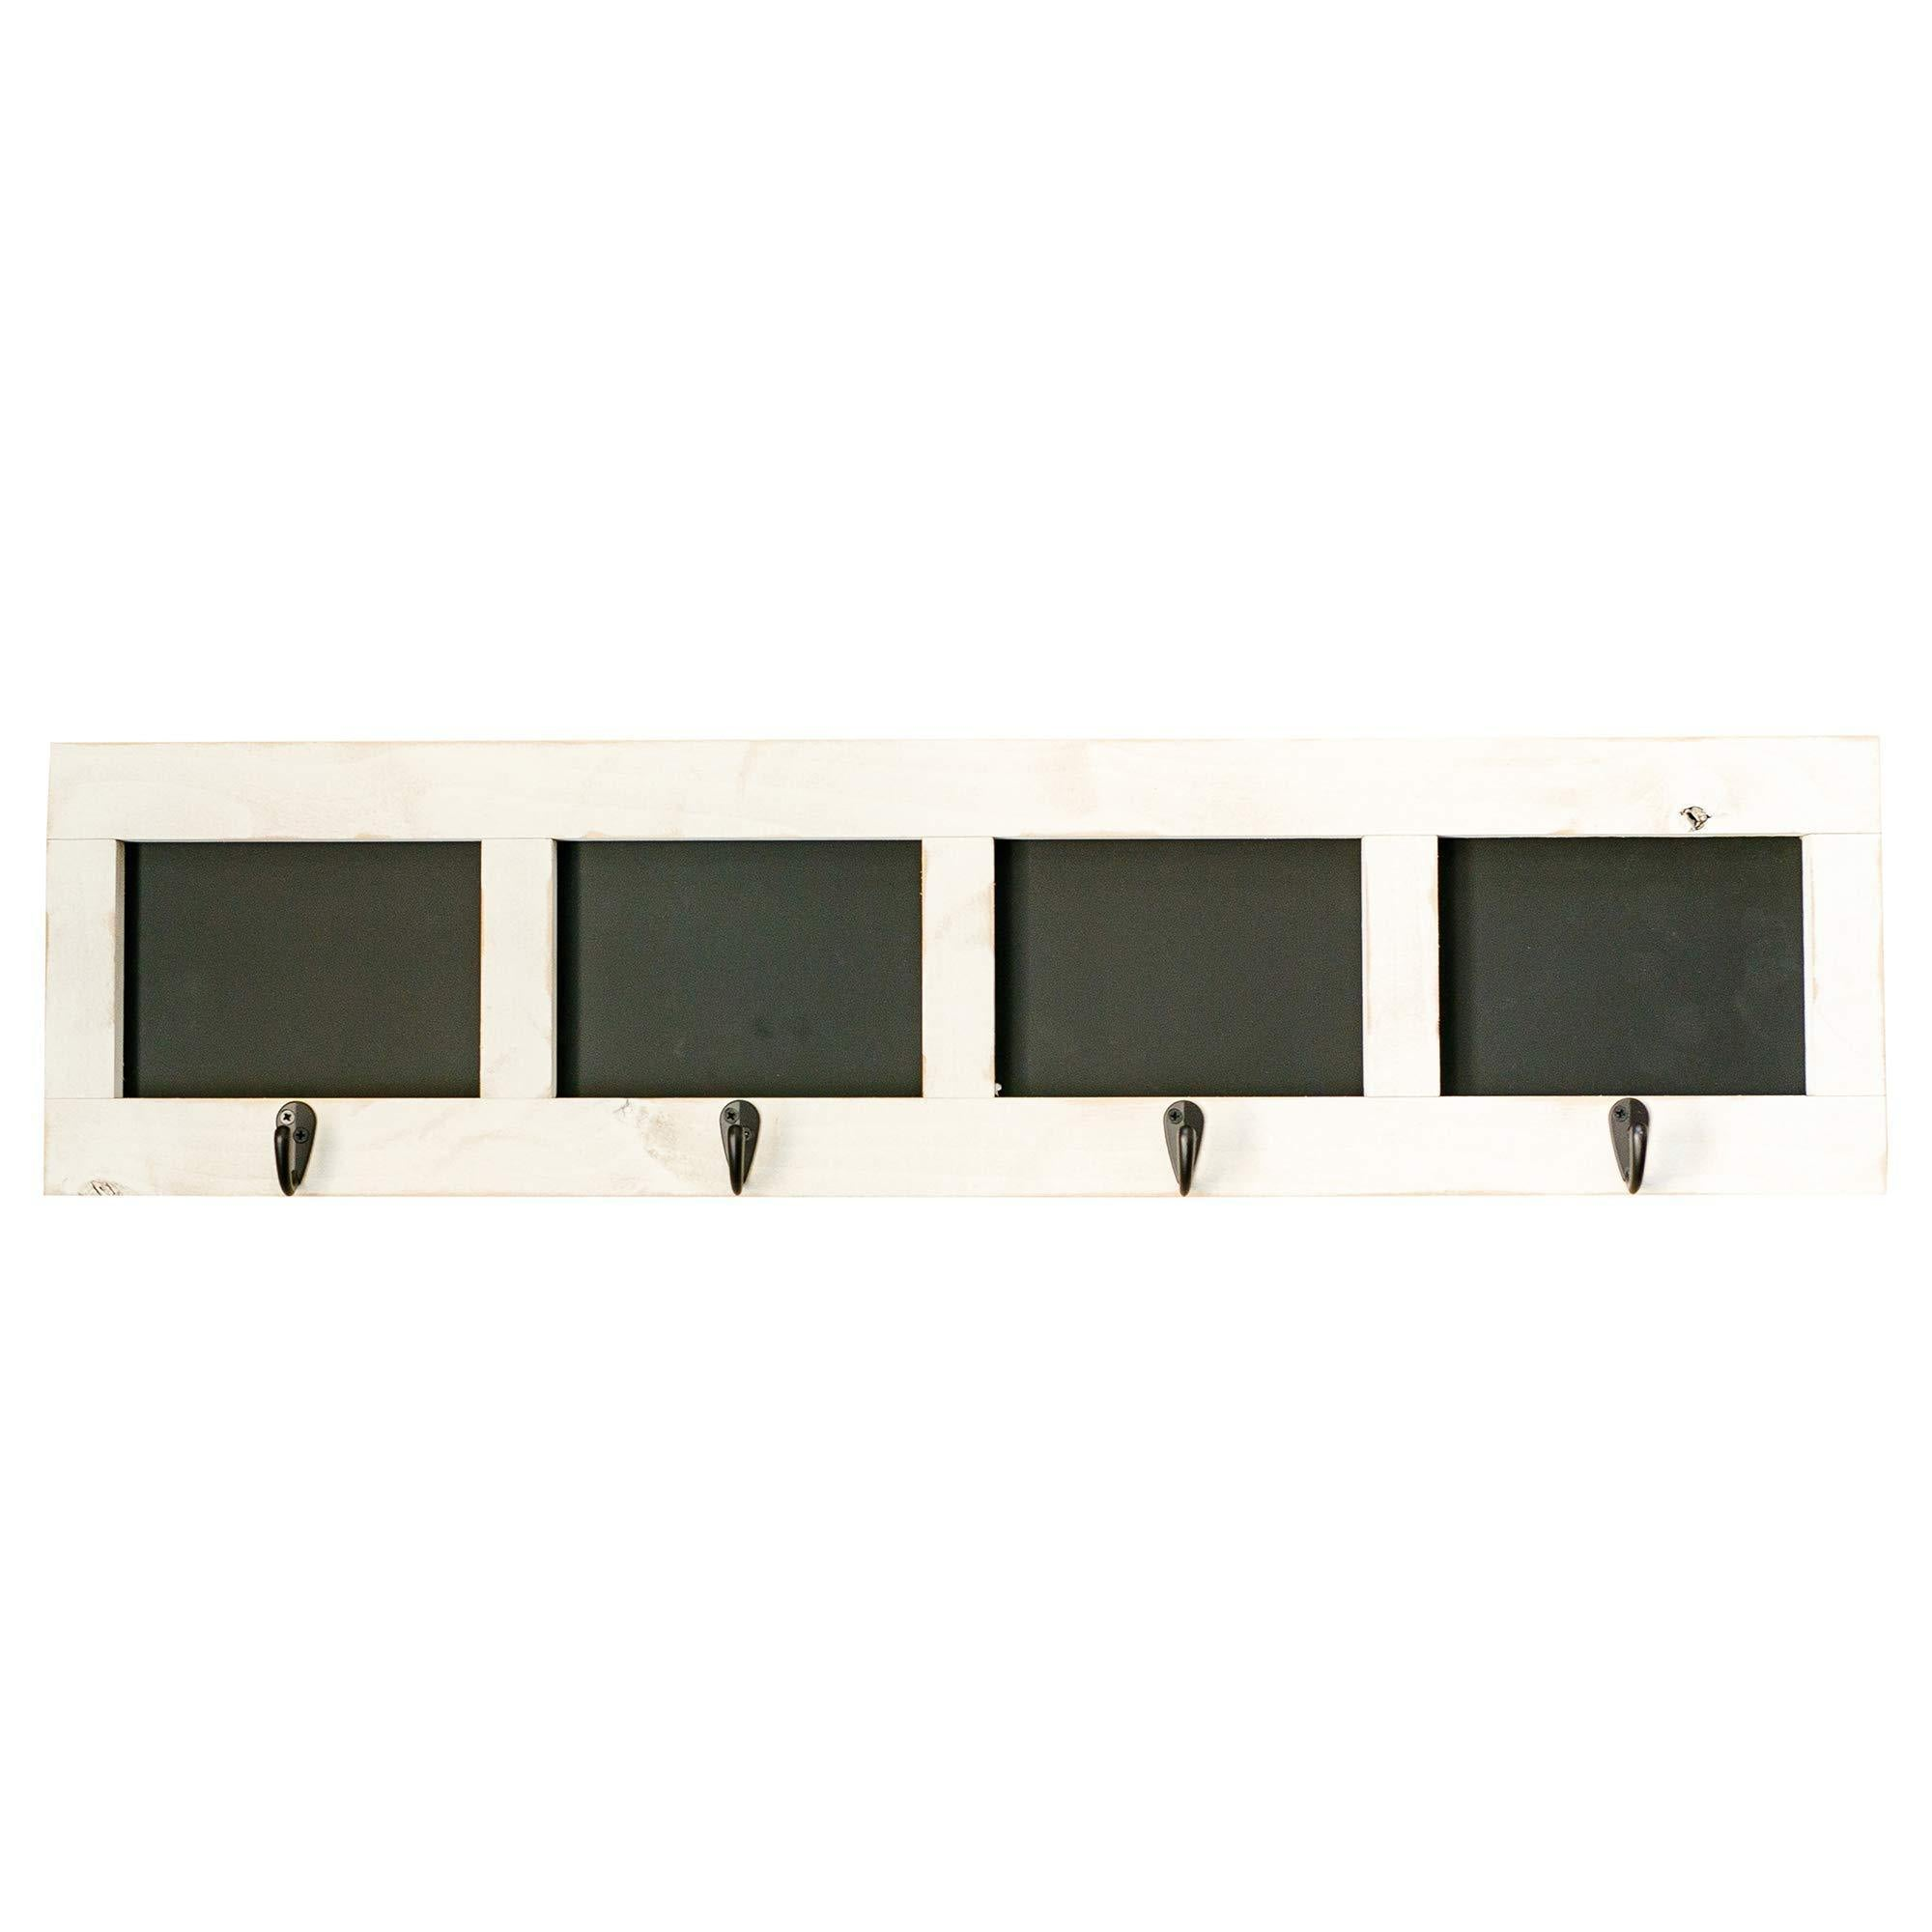 Drakestone Designs Wall Mounted Coat and Towel Rack | 4 Hooks with Chalkboards | Entryway Bathroom Organizer | Solid Wood Farmhouse Decor (Whitewash)